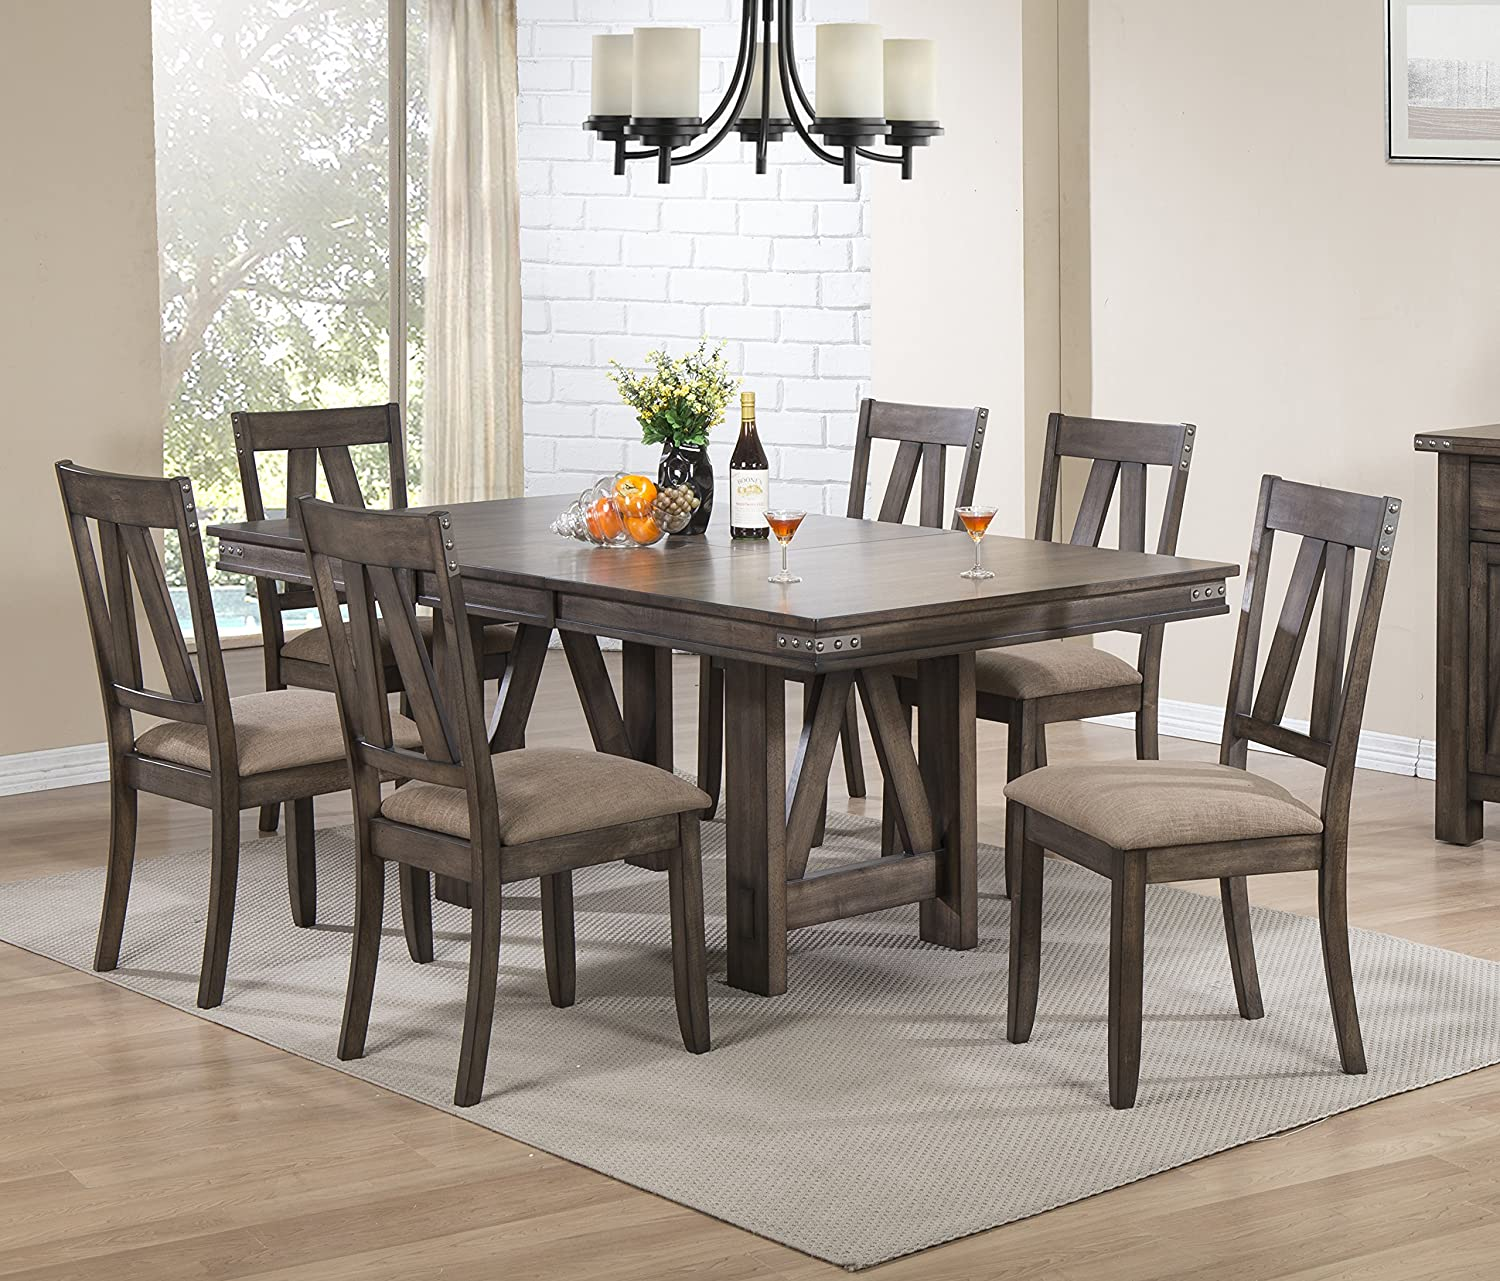 Kings Brand Furniture 7 Piece Lynn Brown Wood Rectangle Dining Room Table & 6 Chairs